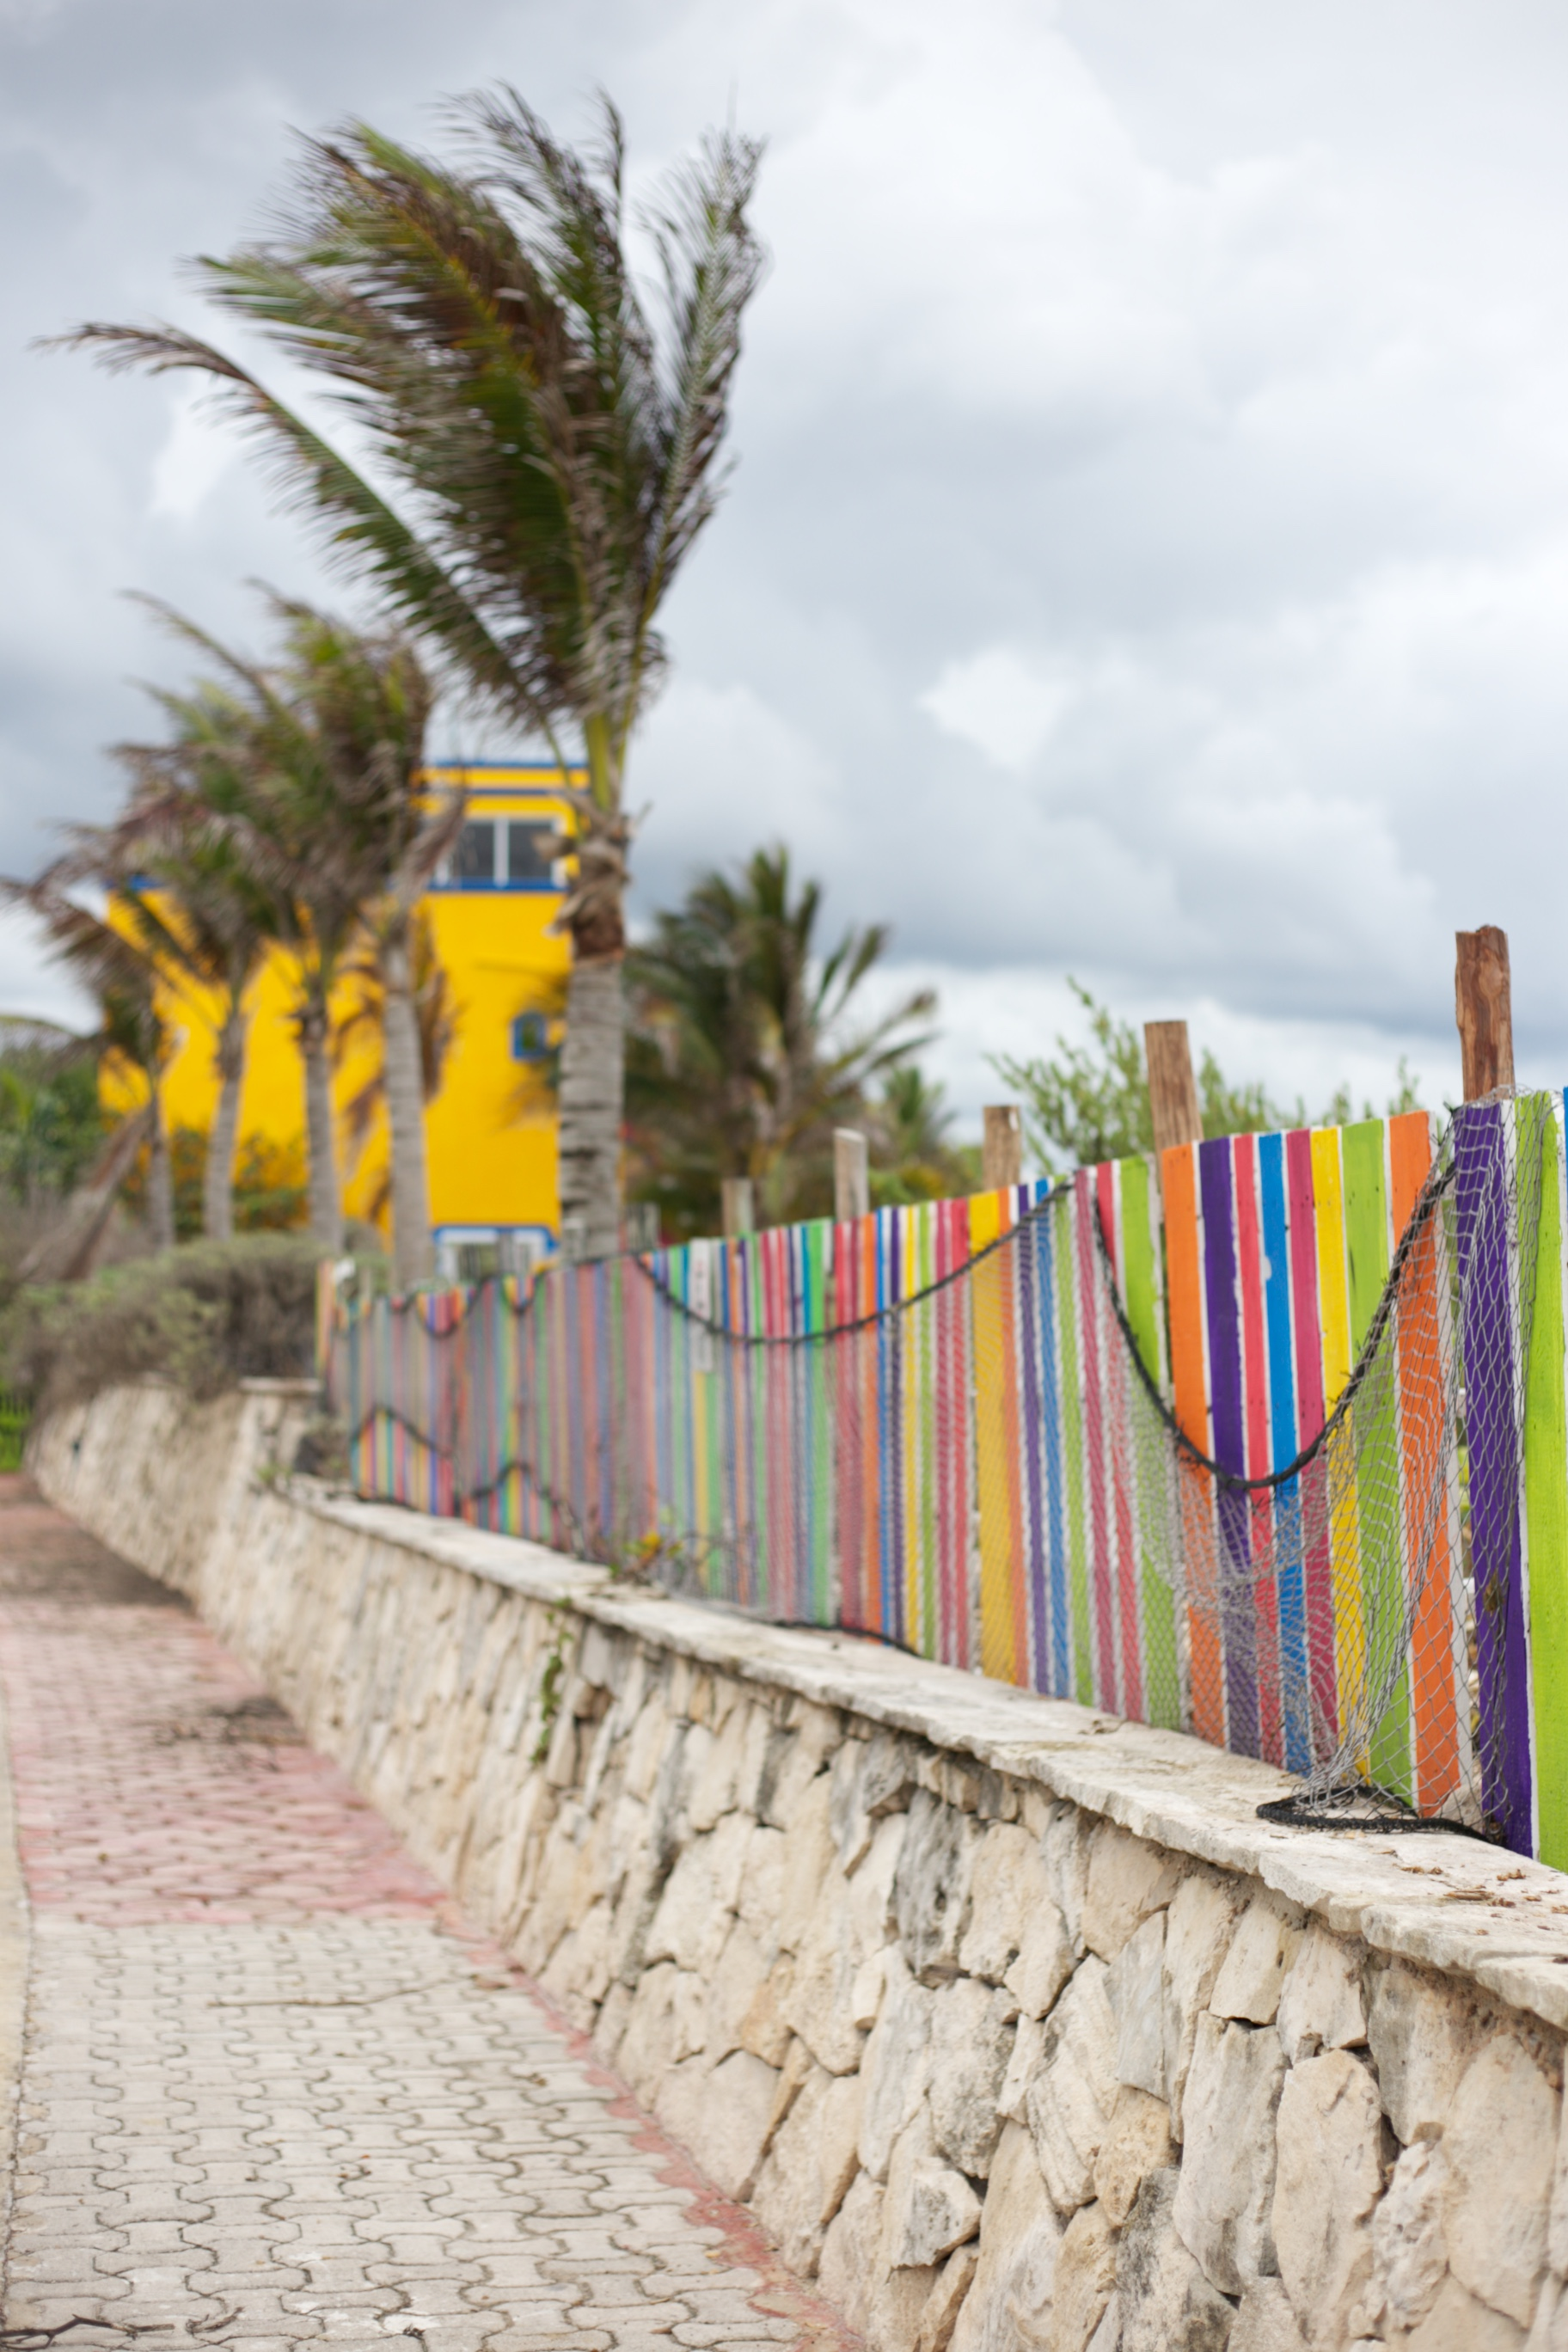 Stormy weather and colourful fences and palm trees in Akumal, near Cancun.